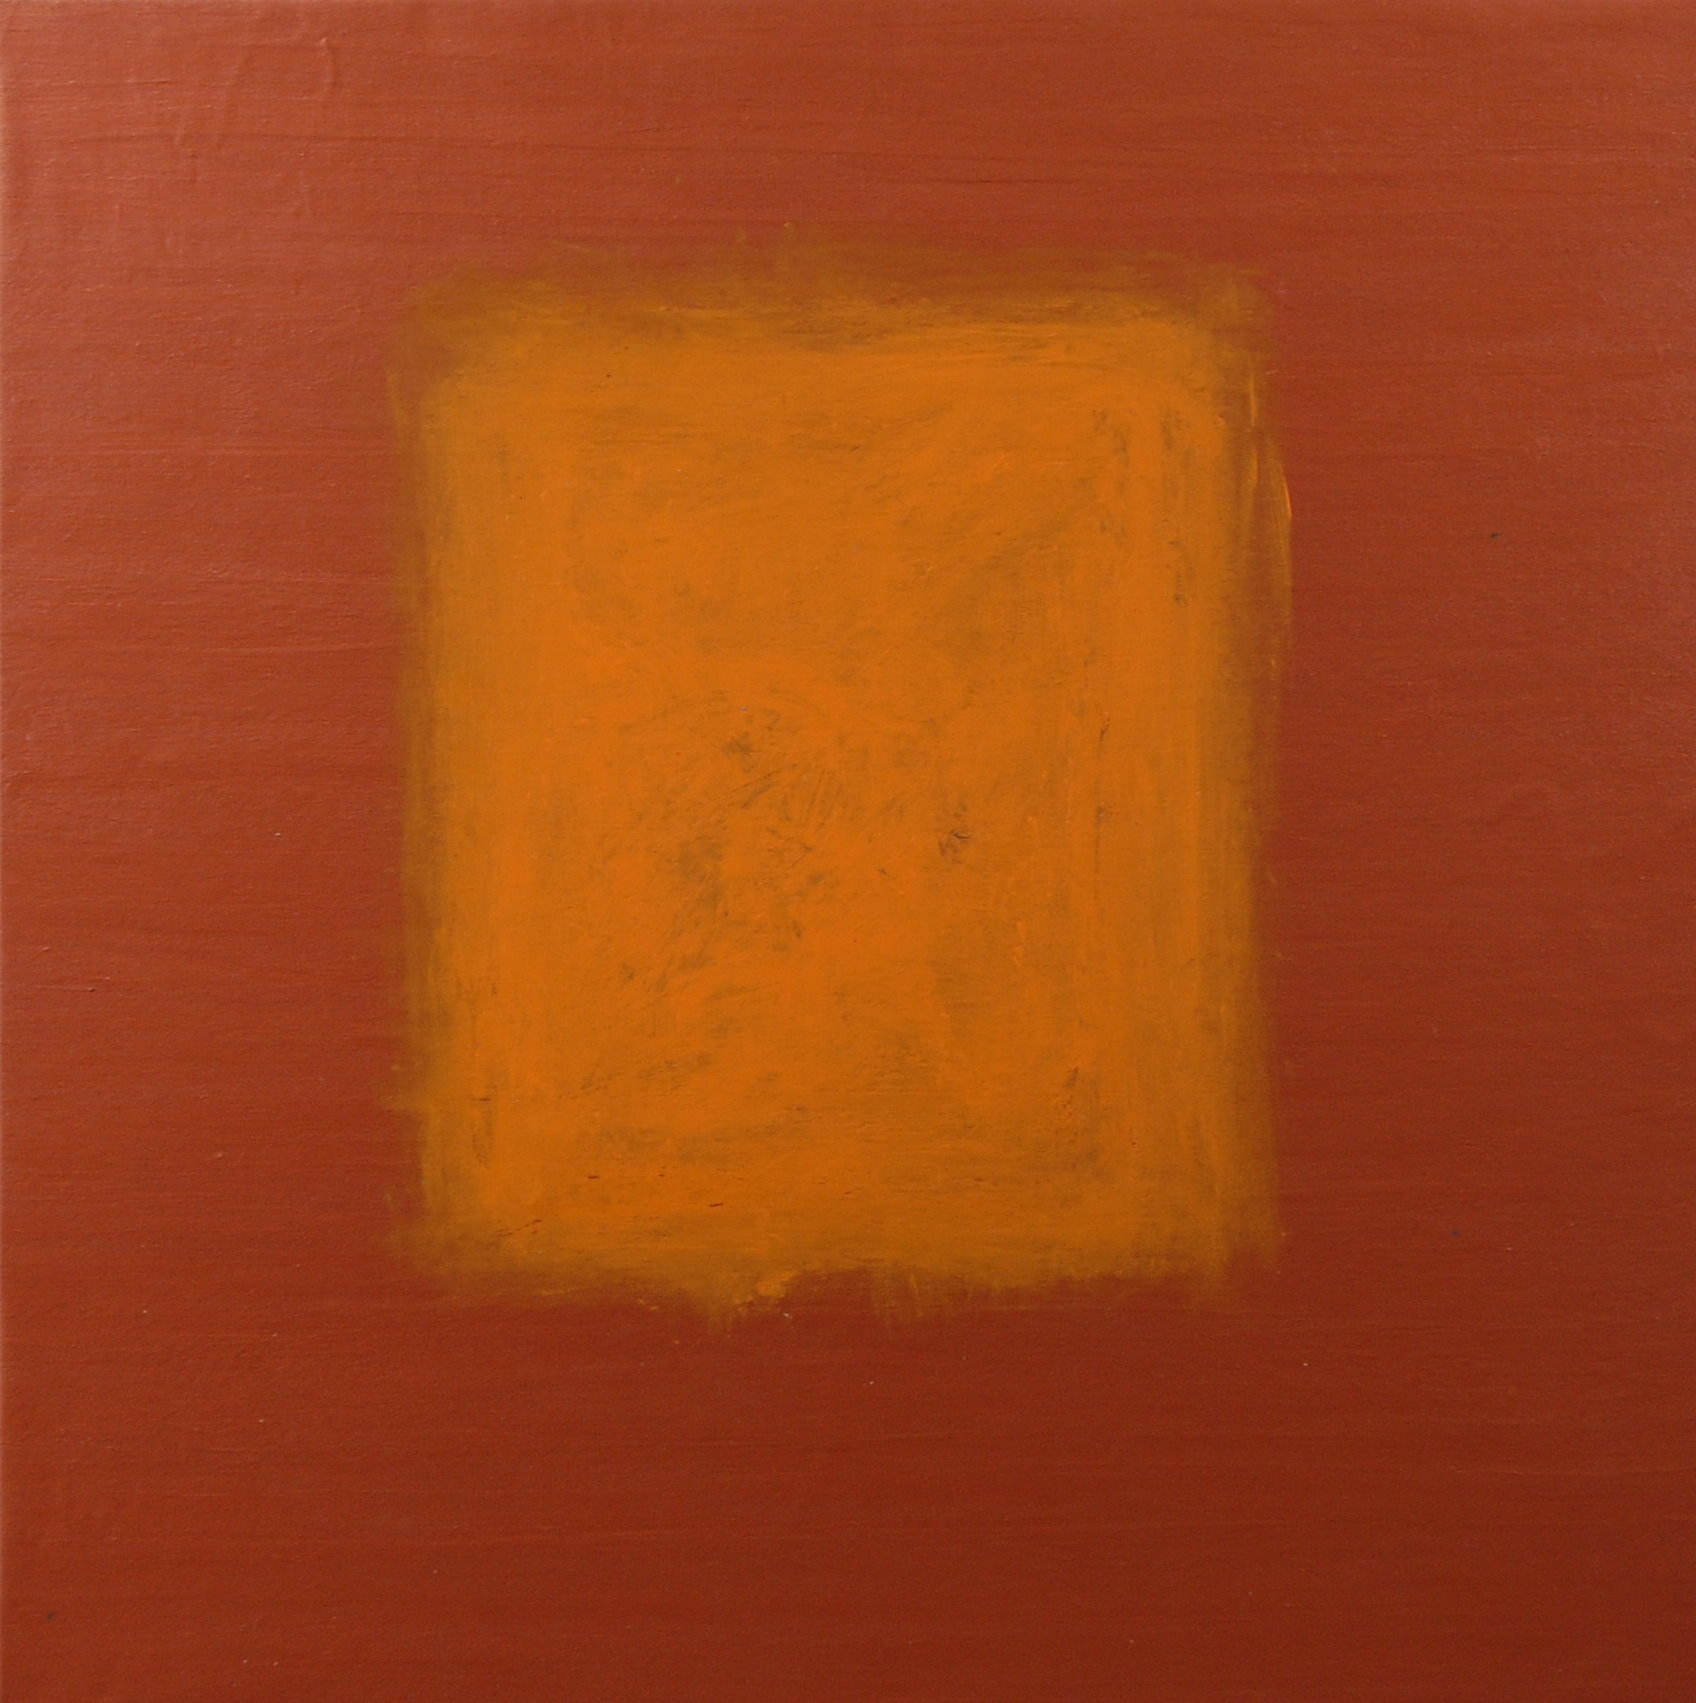 """Orange On Bronze"", Mixed Media on Canvas, 30""x30"", AVAILABLE"